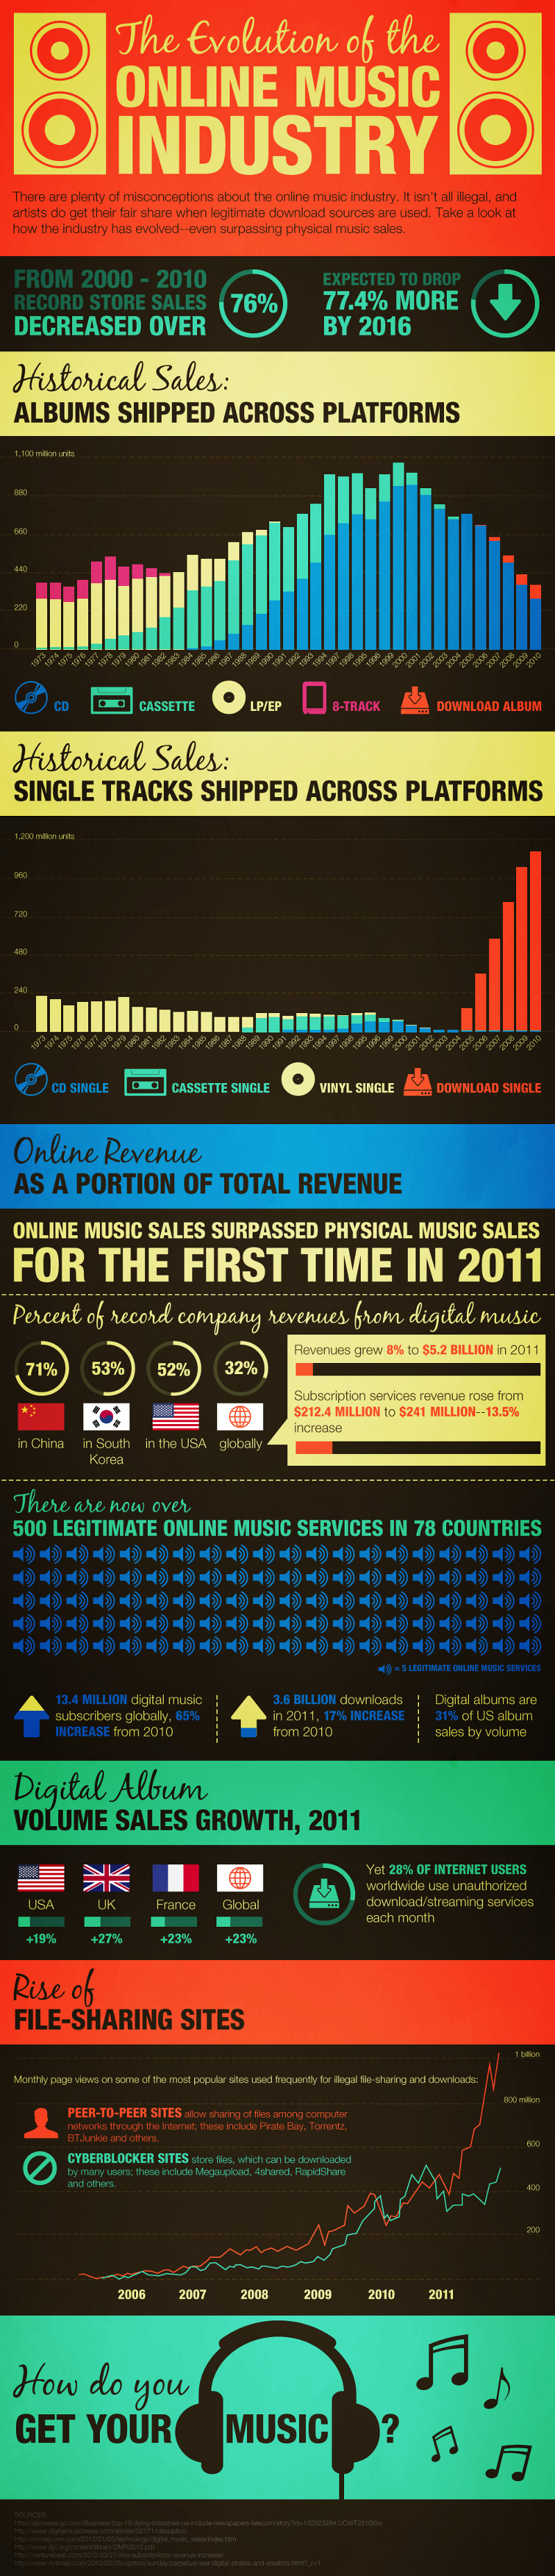 Online Music Industry Facts